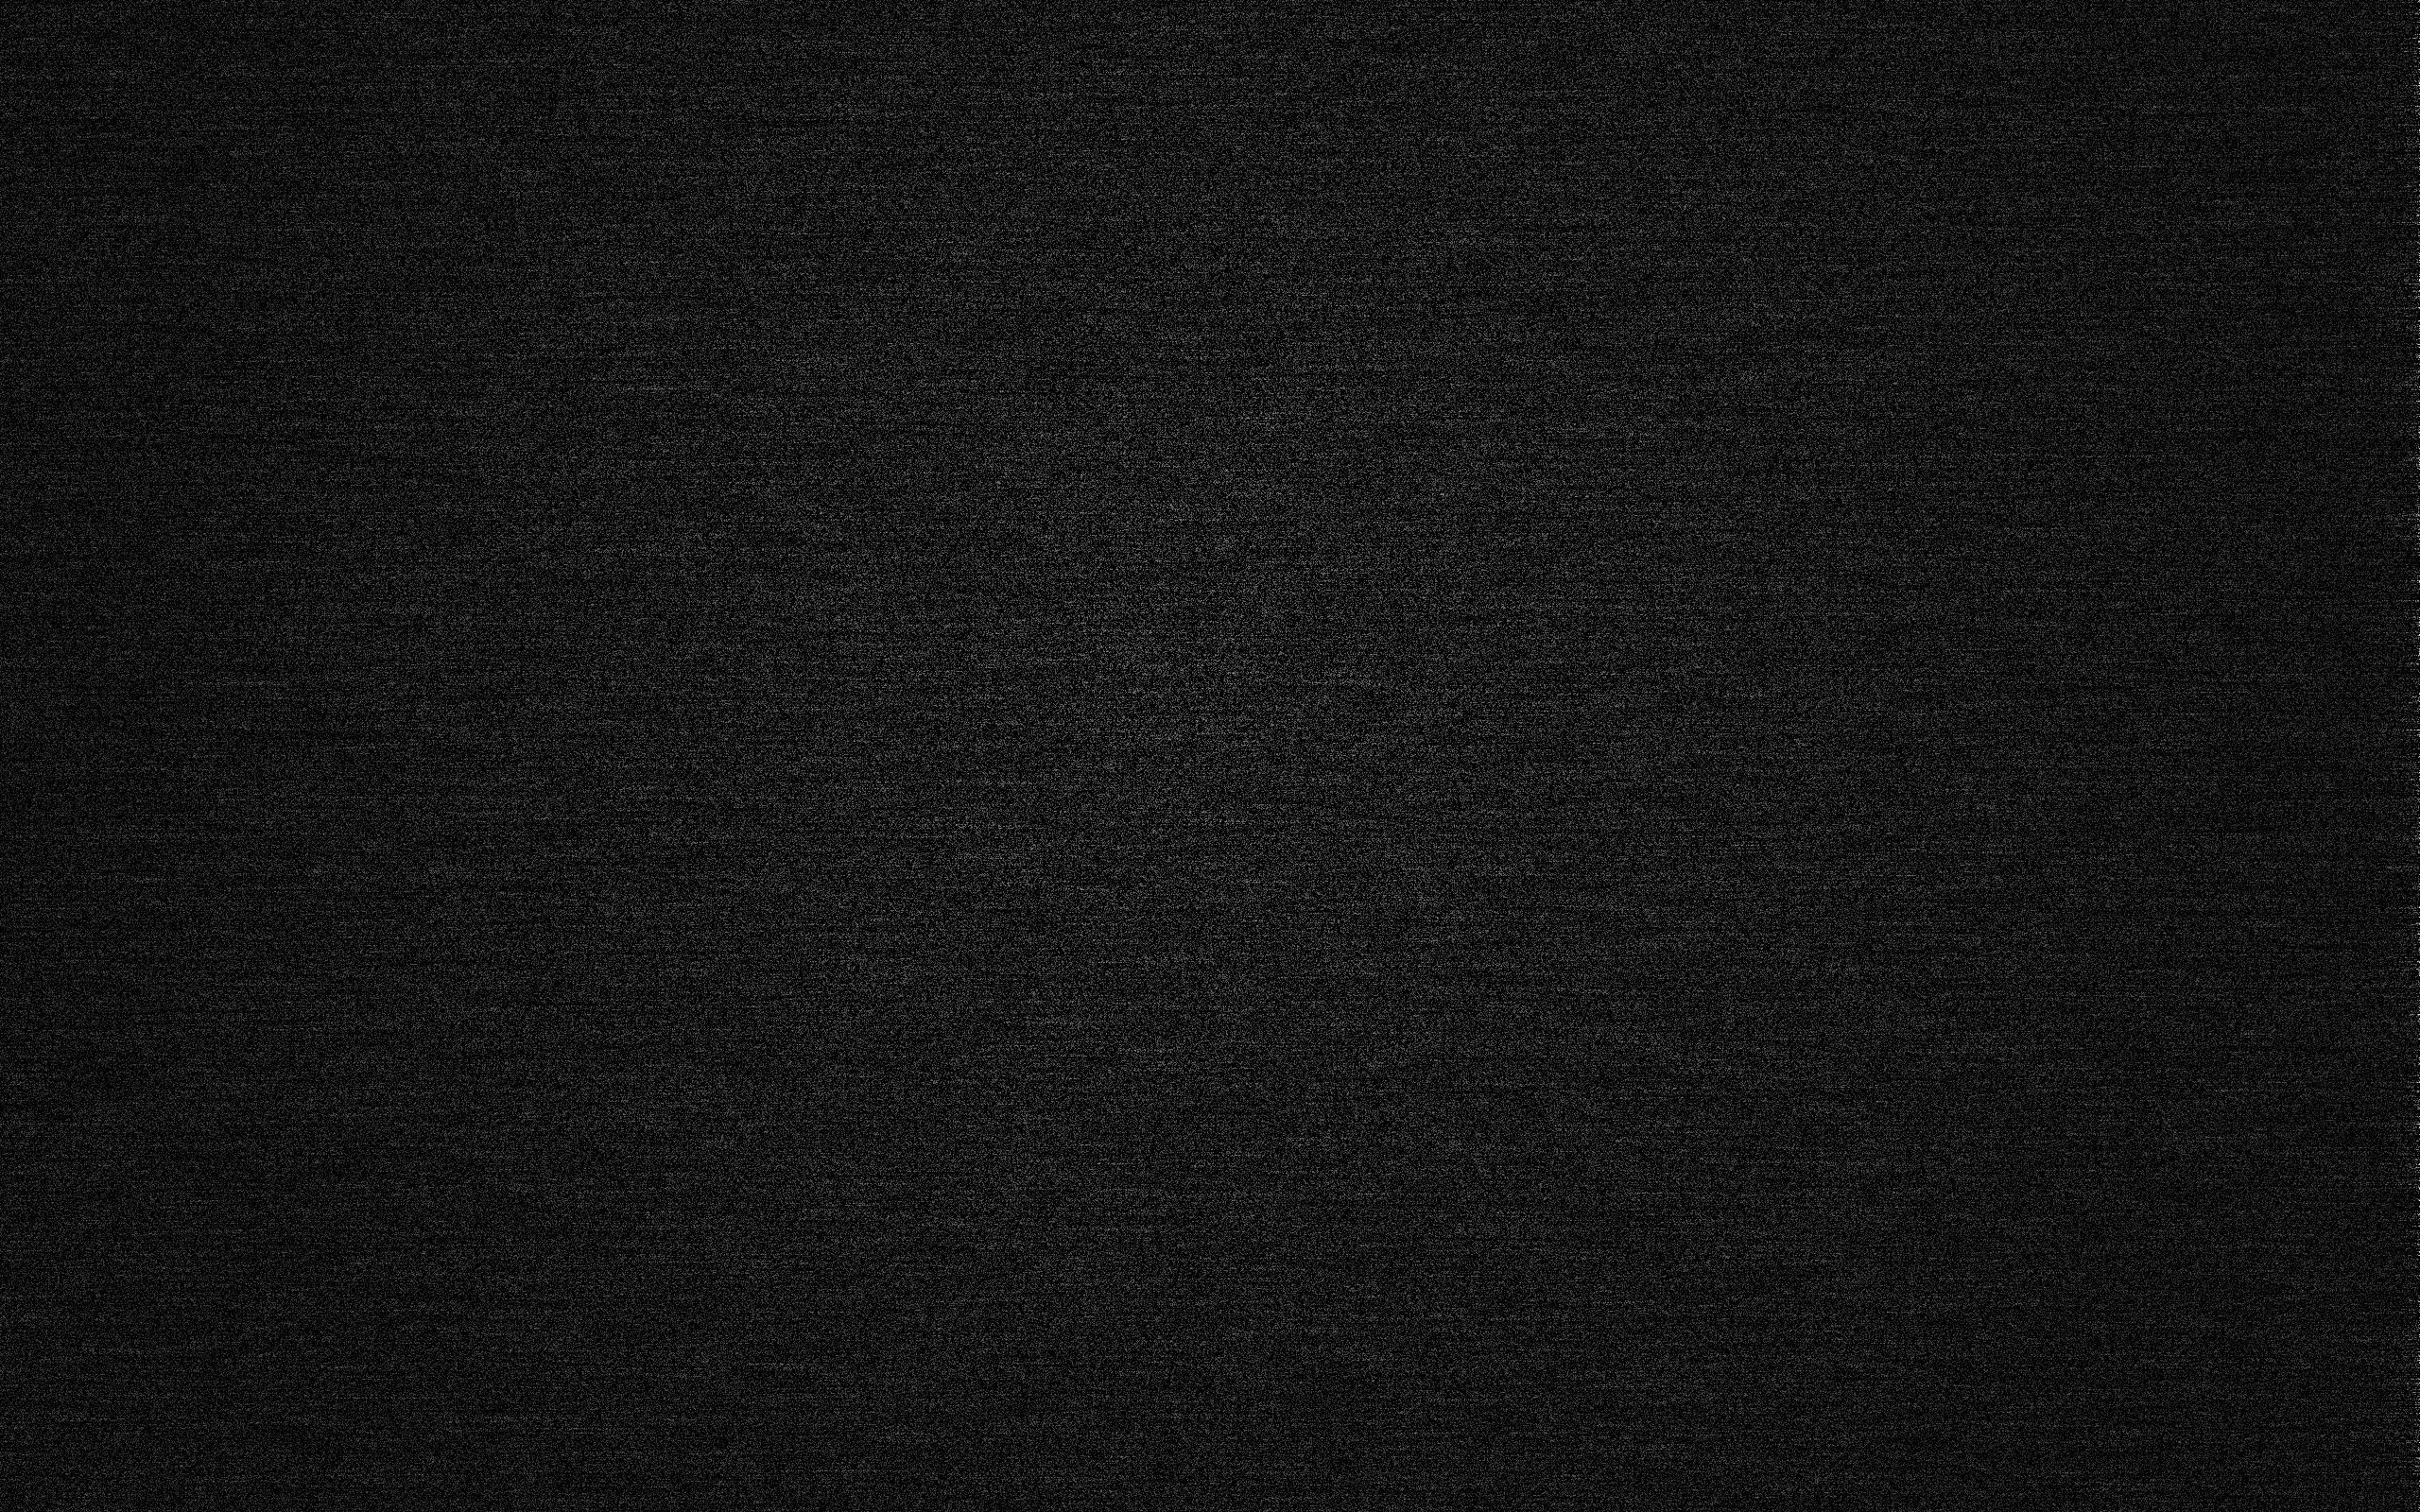 Texture black fabric denim textures wallpaper life for Black fabric